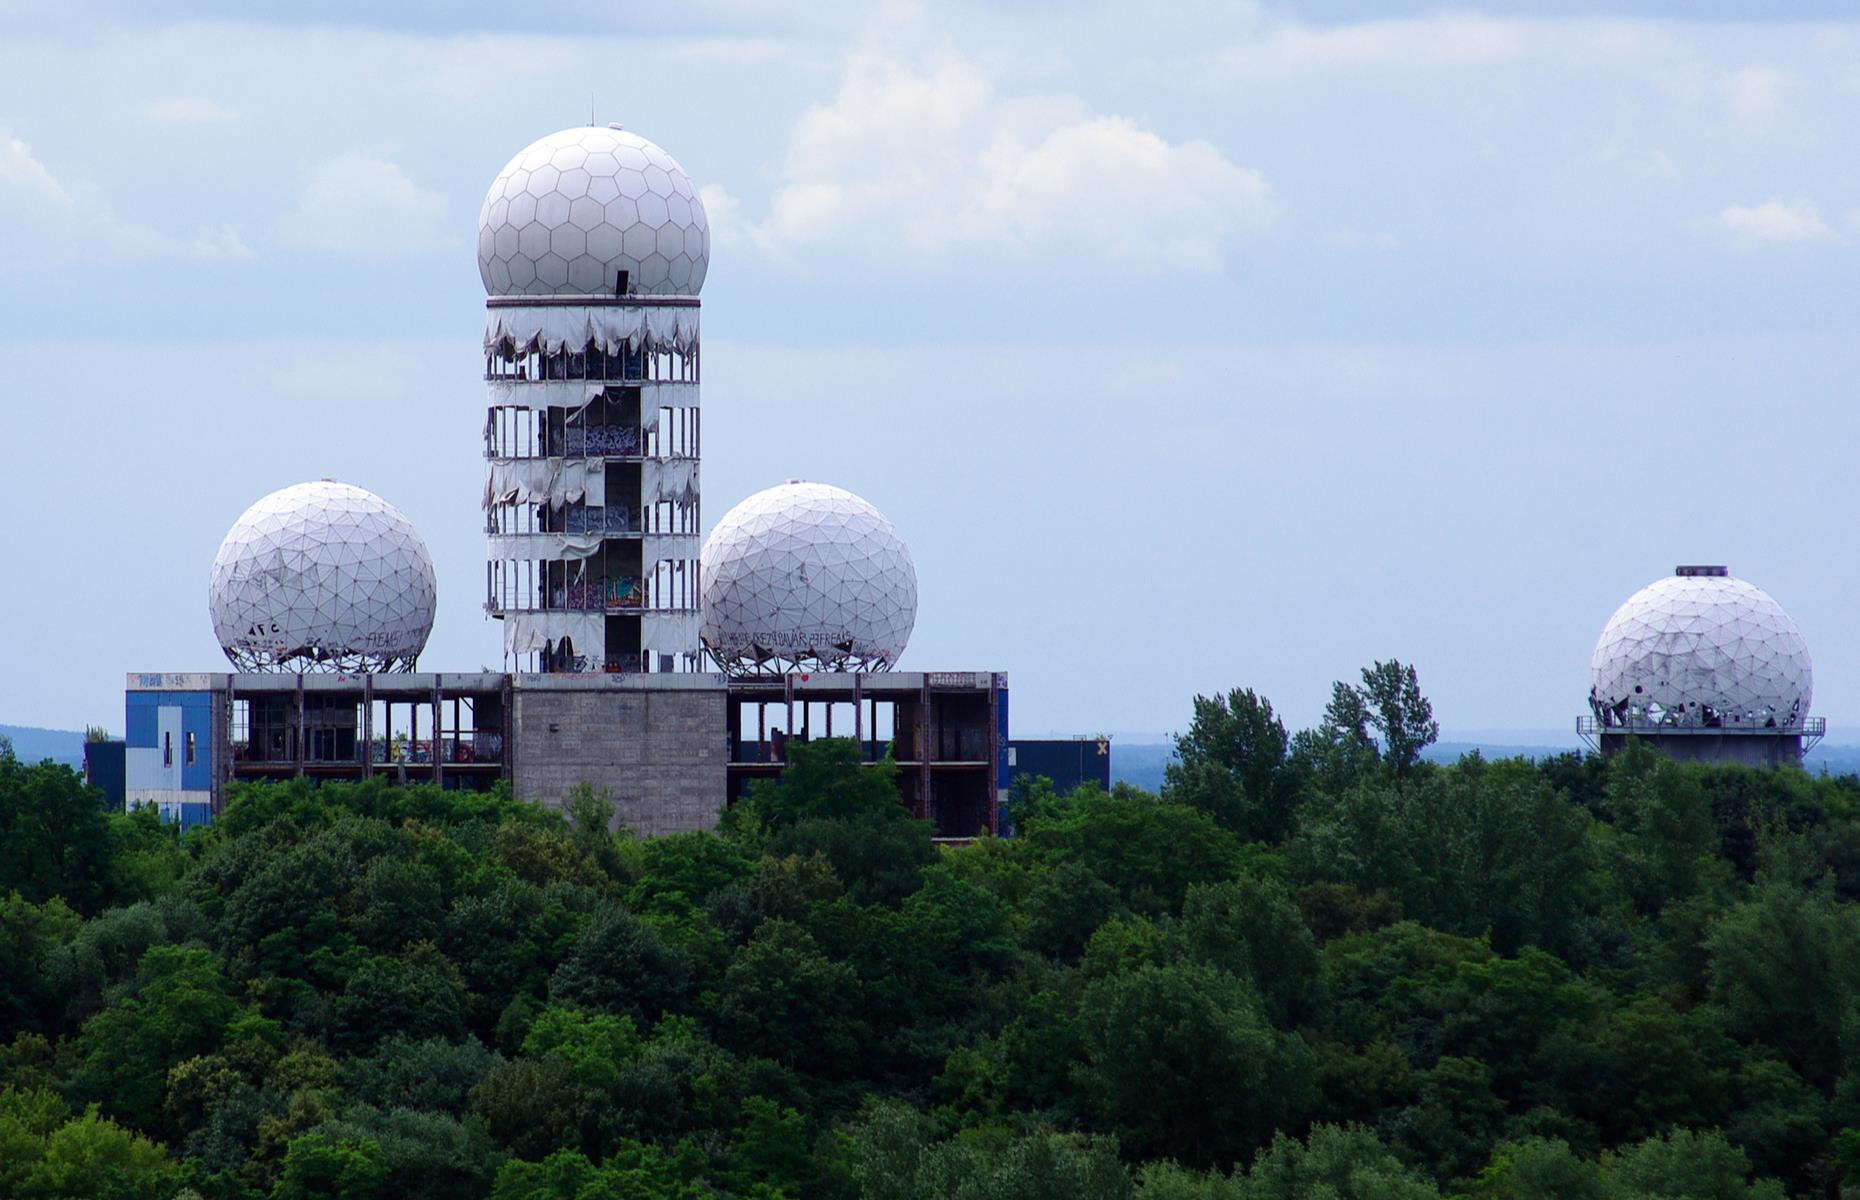 Slide 32 of 51: The four mysterious radomes of Teufelsberg seem to be a bit out of place. Little is known about what exactly was listened to and what methods were used. Not until 2020 anyway, when the archives are supposed to be opened to the public...